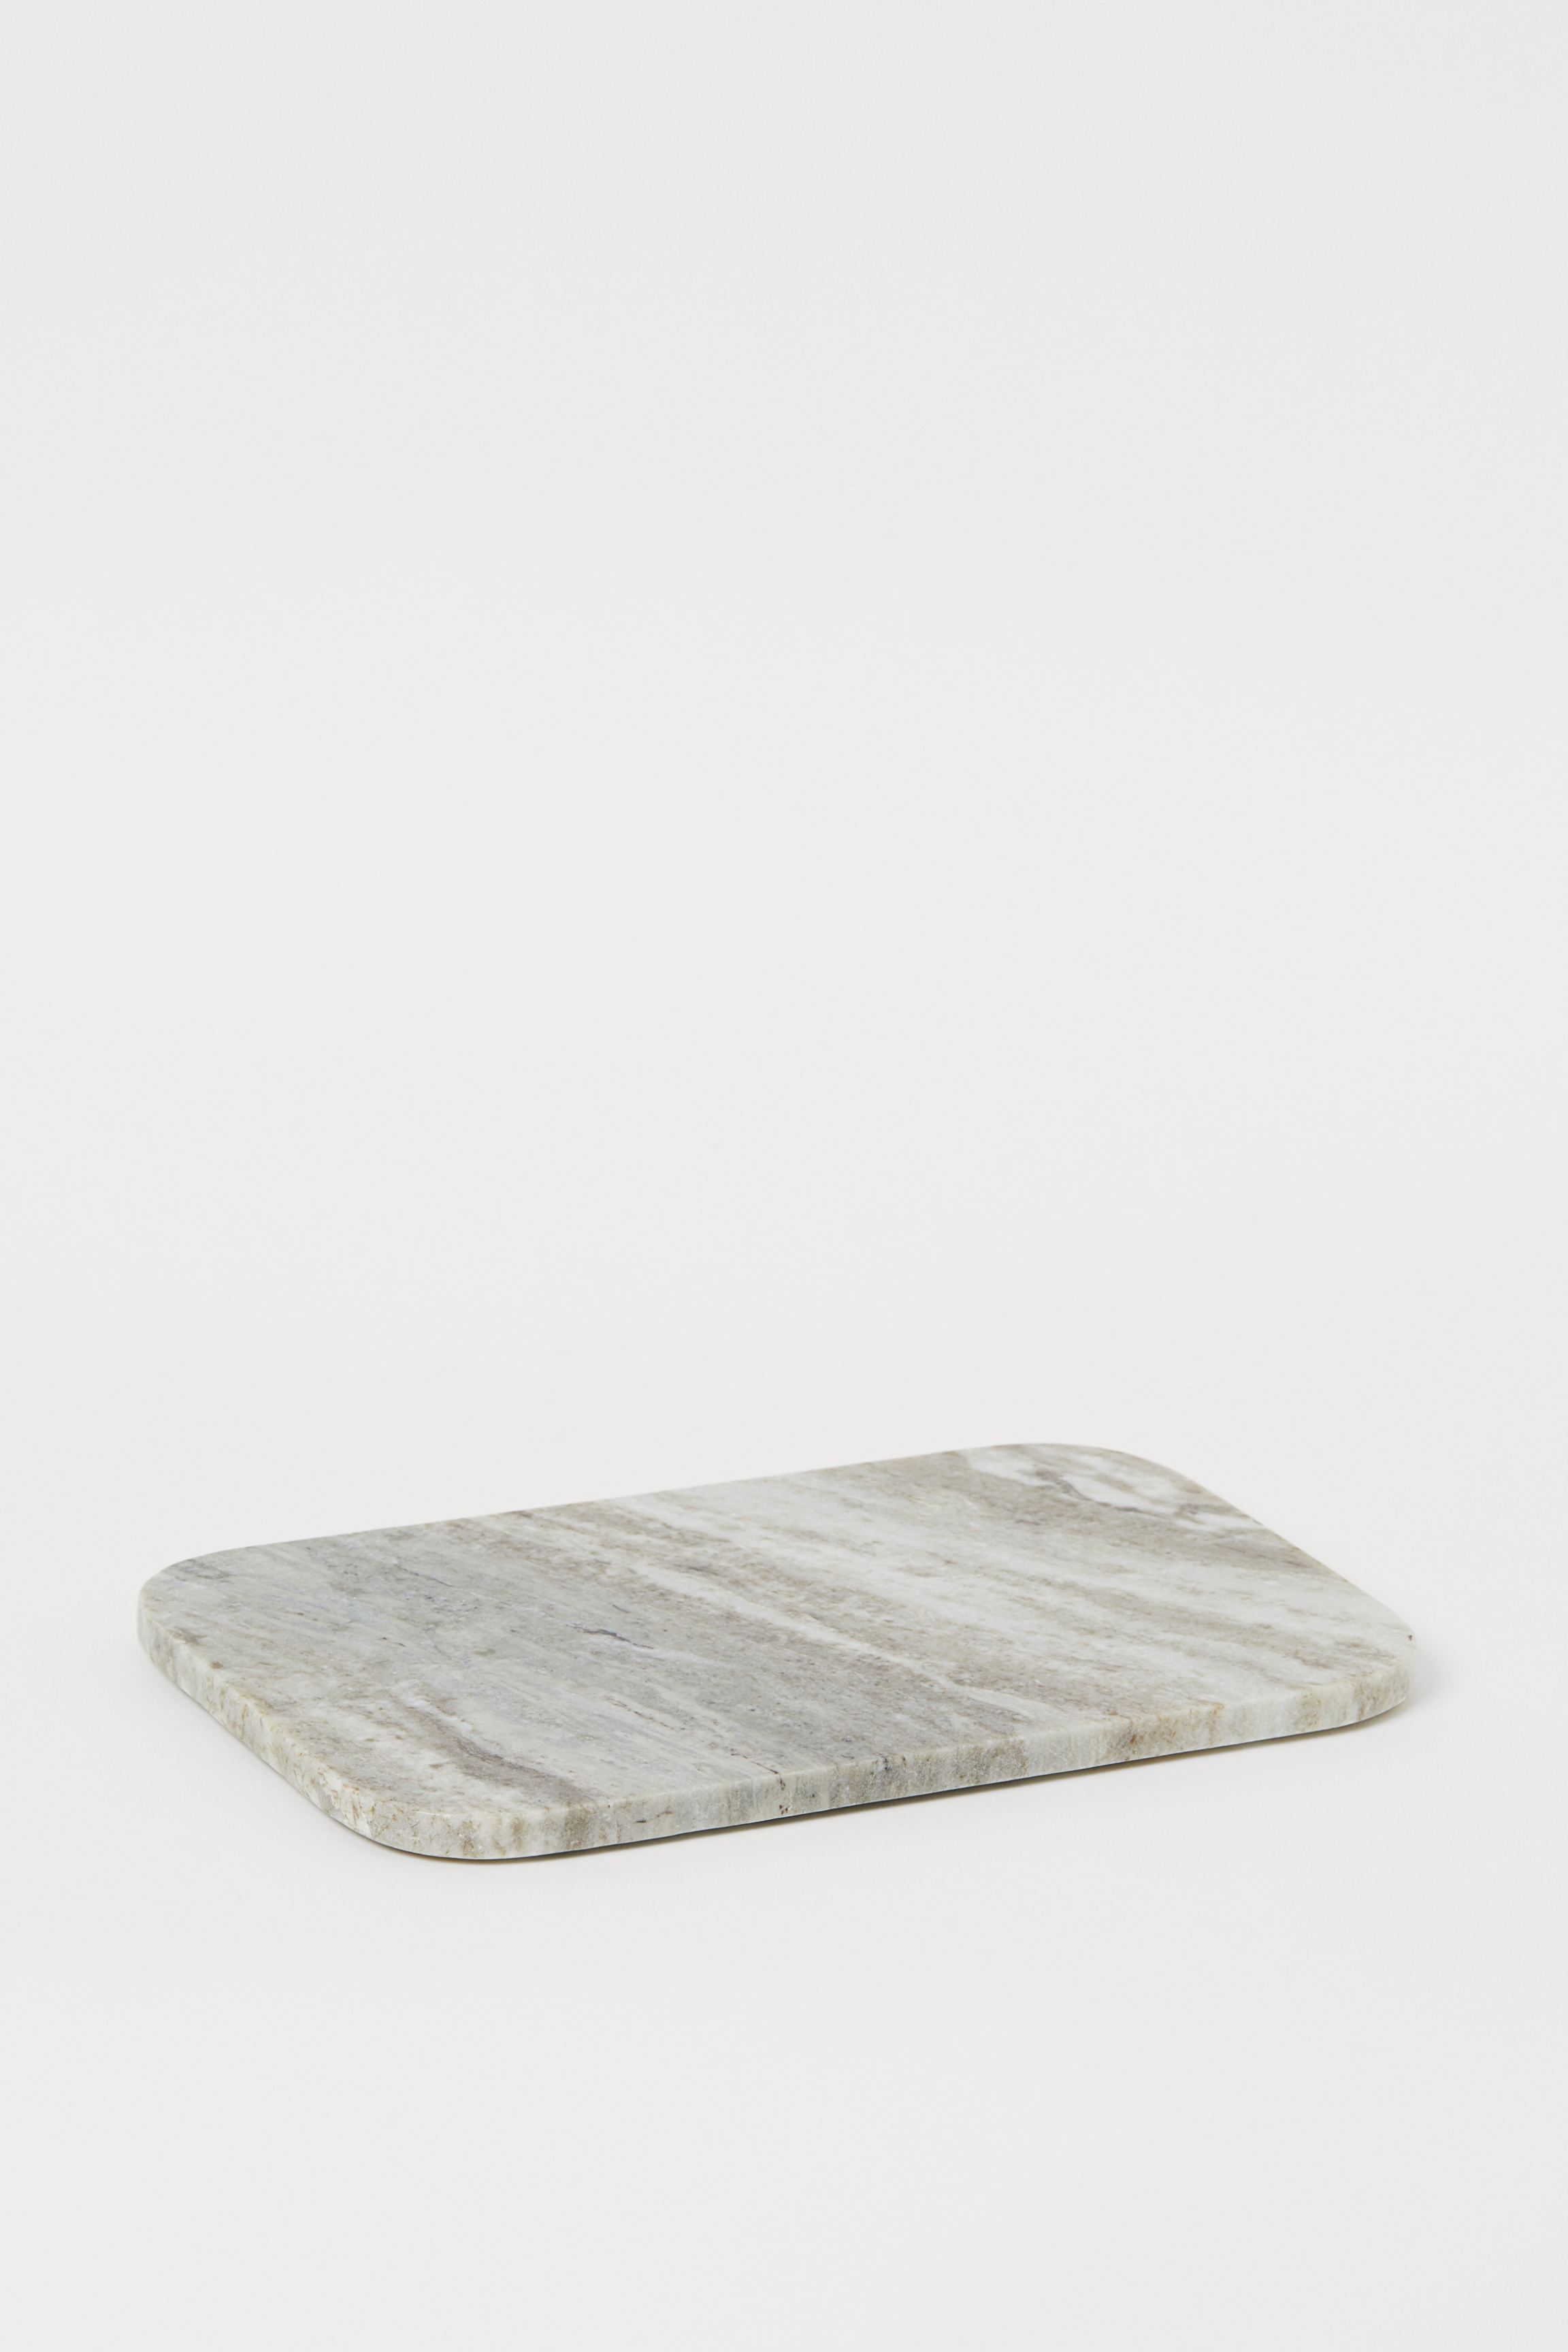 Marble Serving Tray Light Beige Marble Home All H M Ca